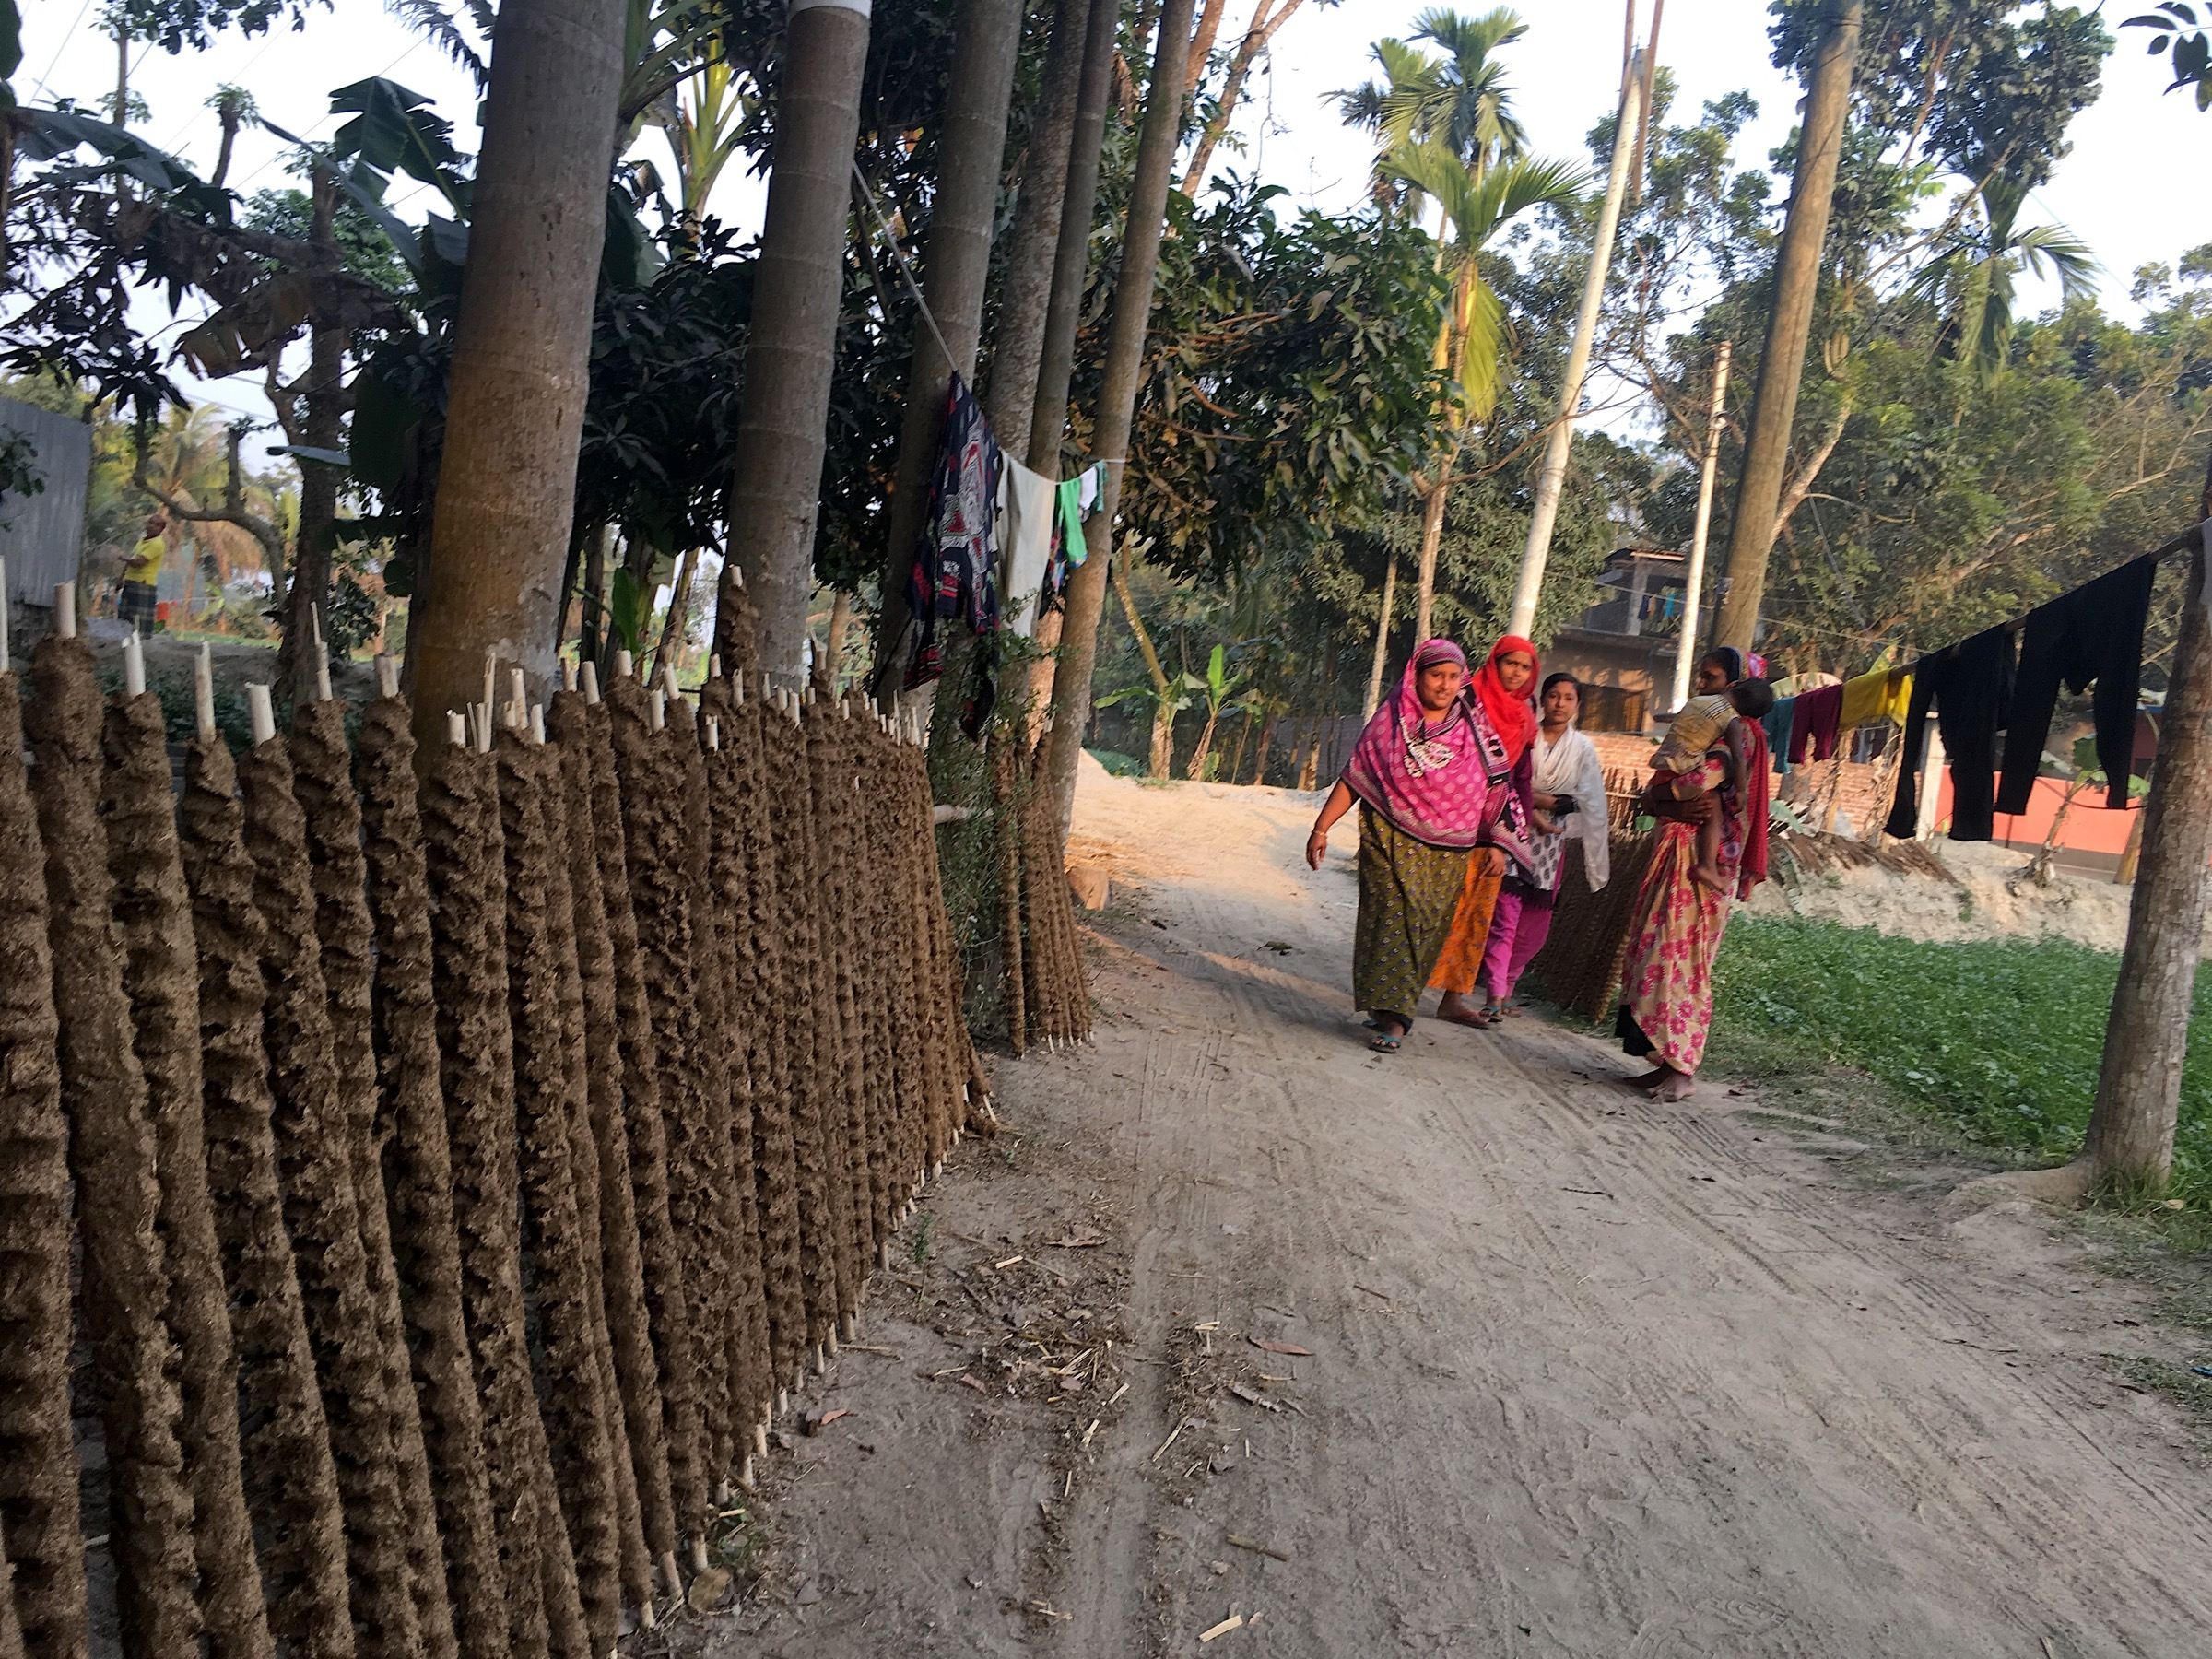 Investigating Nipah outbreaks and potential threats of infection frequently takes the team to remote regions of Bangladesh, where one town or village blends into another and homes have no address. Photograph by Steven Bedard